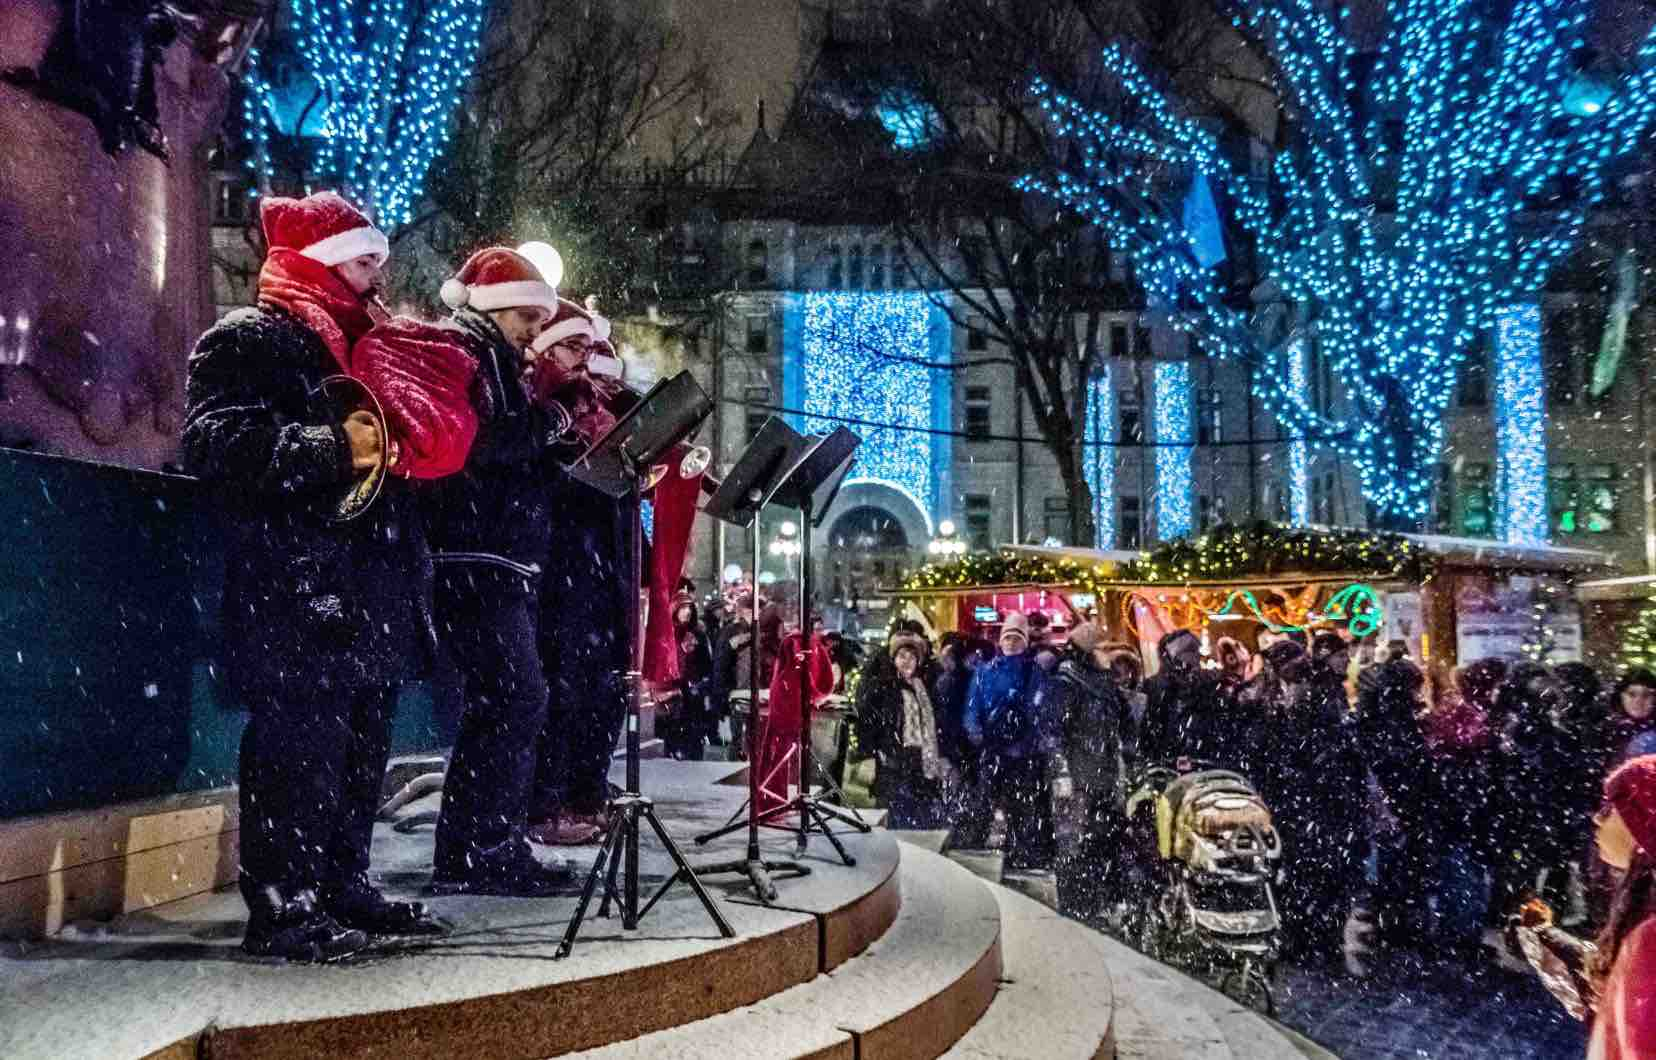 Christmas In Quebec City 2020 14+ Amazing Things to Do in Quebec City This Christmas and Holiday